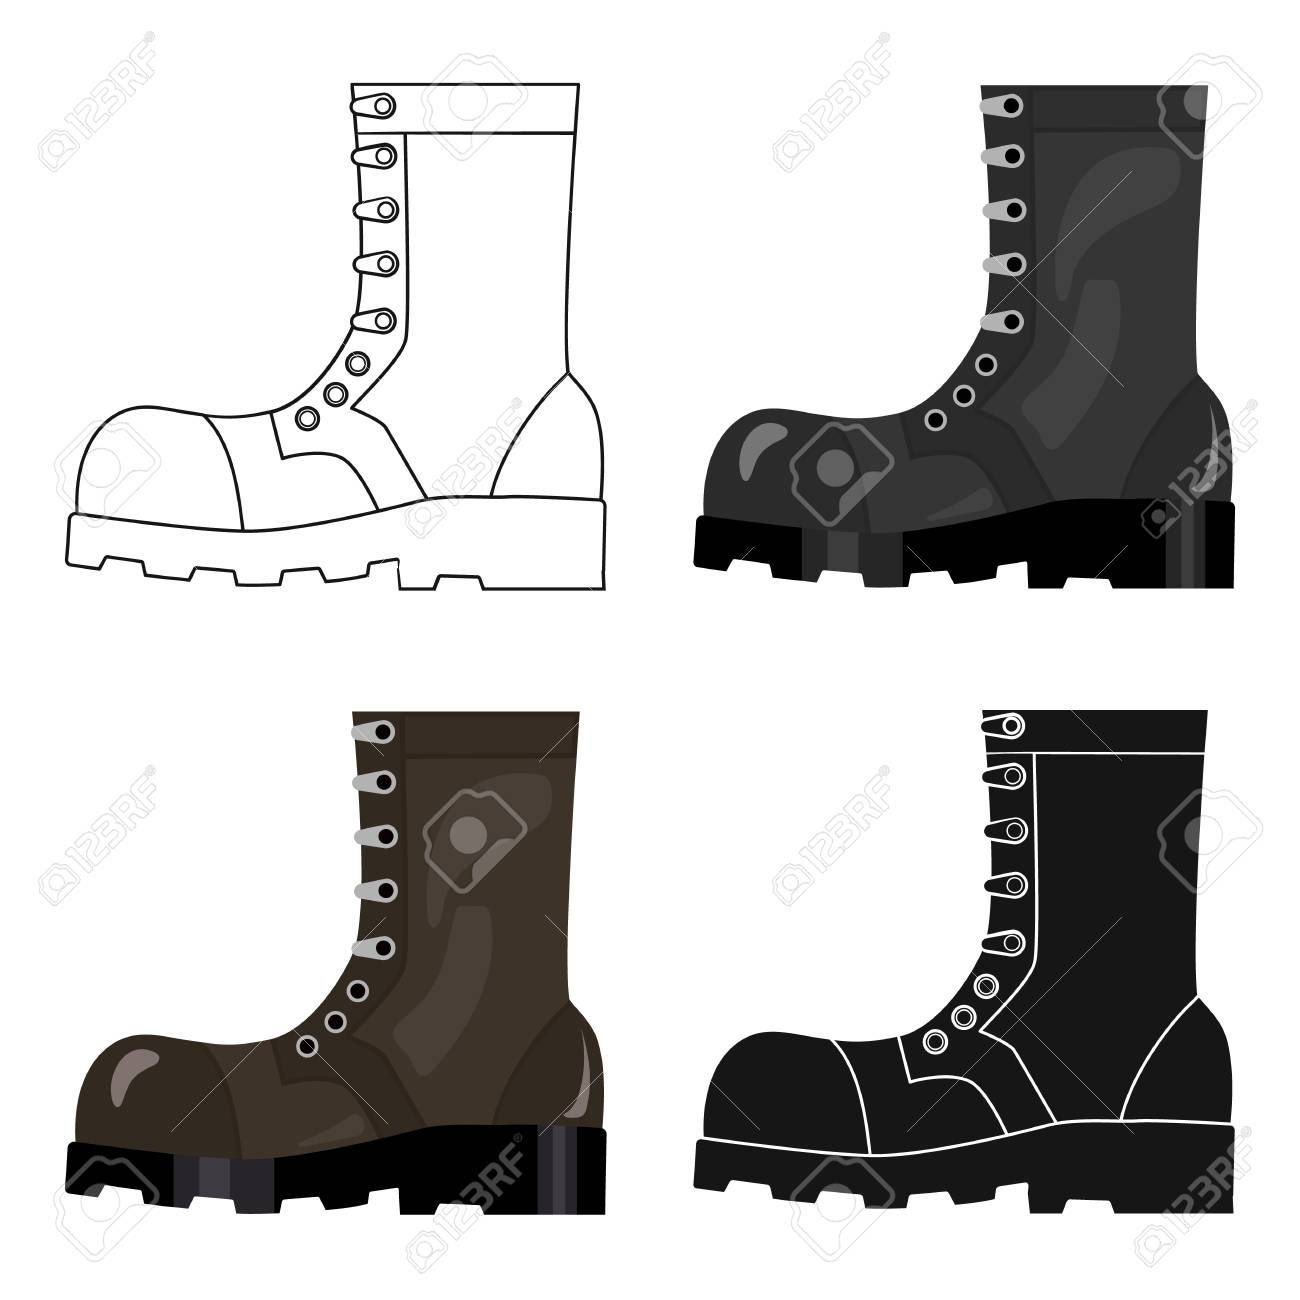 Army combat boots icon in cartoon style isolated on white background